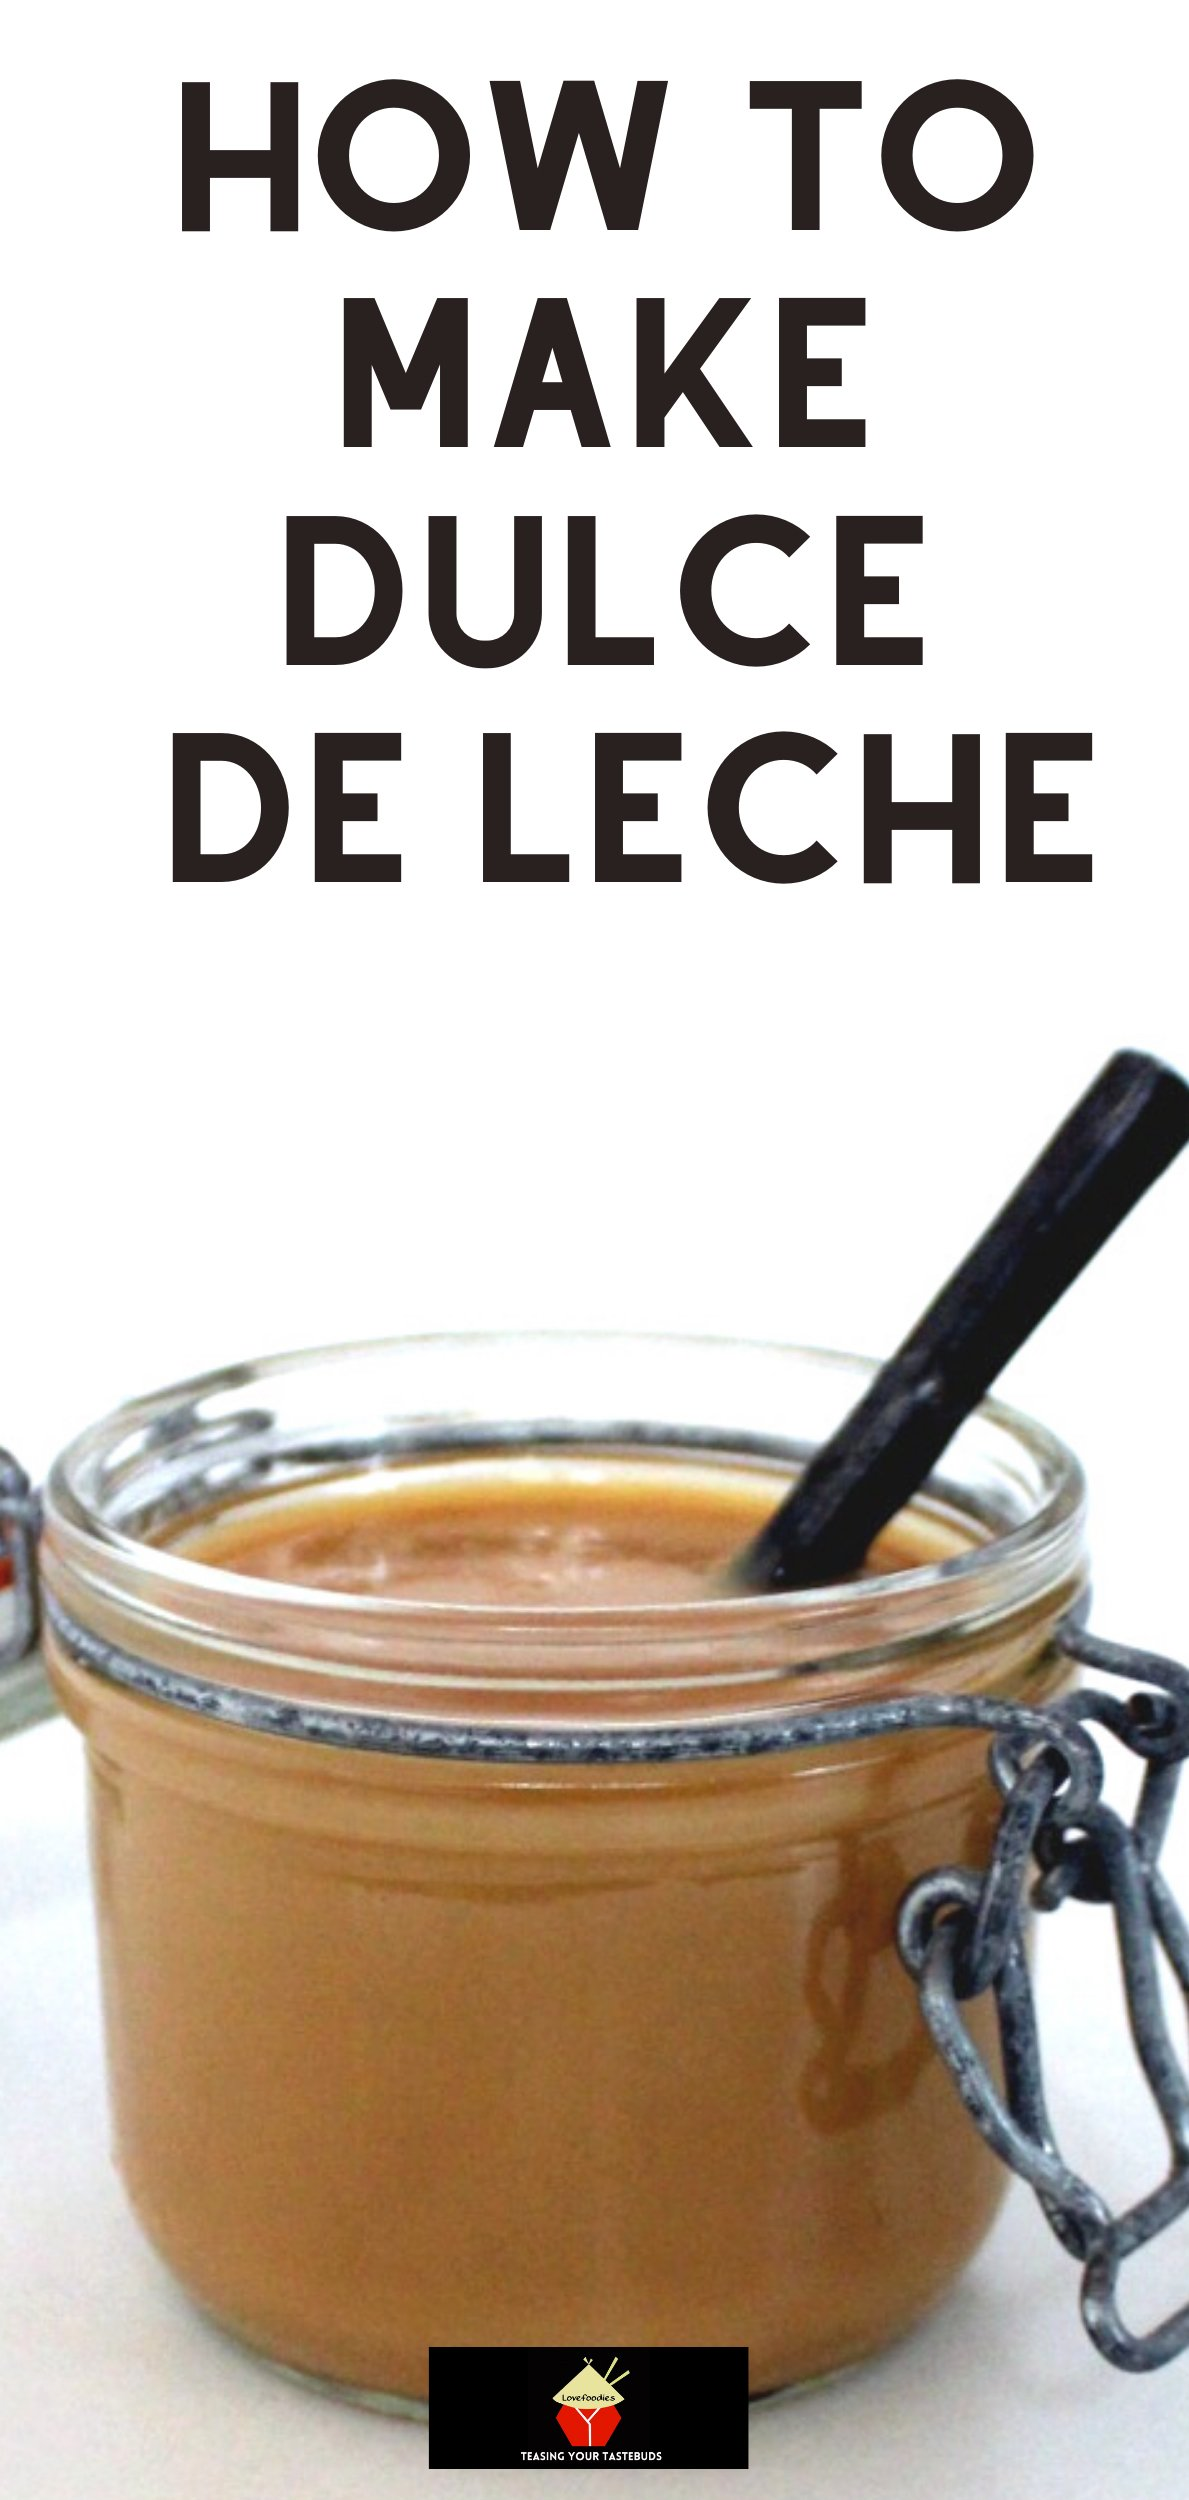 How To Make Dulce De Leche. An easy recipe to making your own Dulce De Leche. Super easy, using a can of sweetened condensed milk & no other ingredients to give you sweet, sticky caramel.